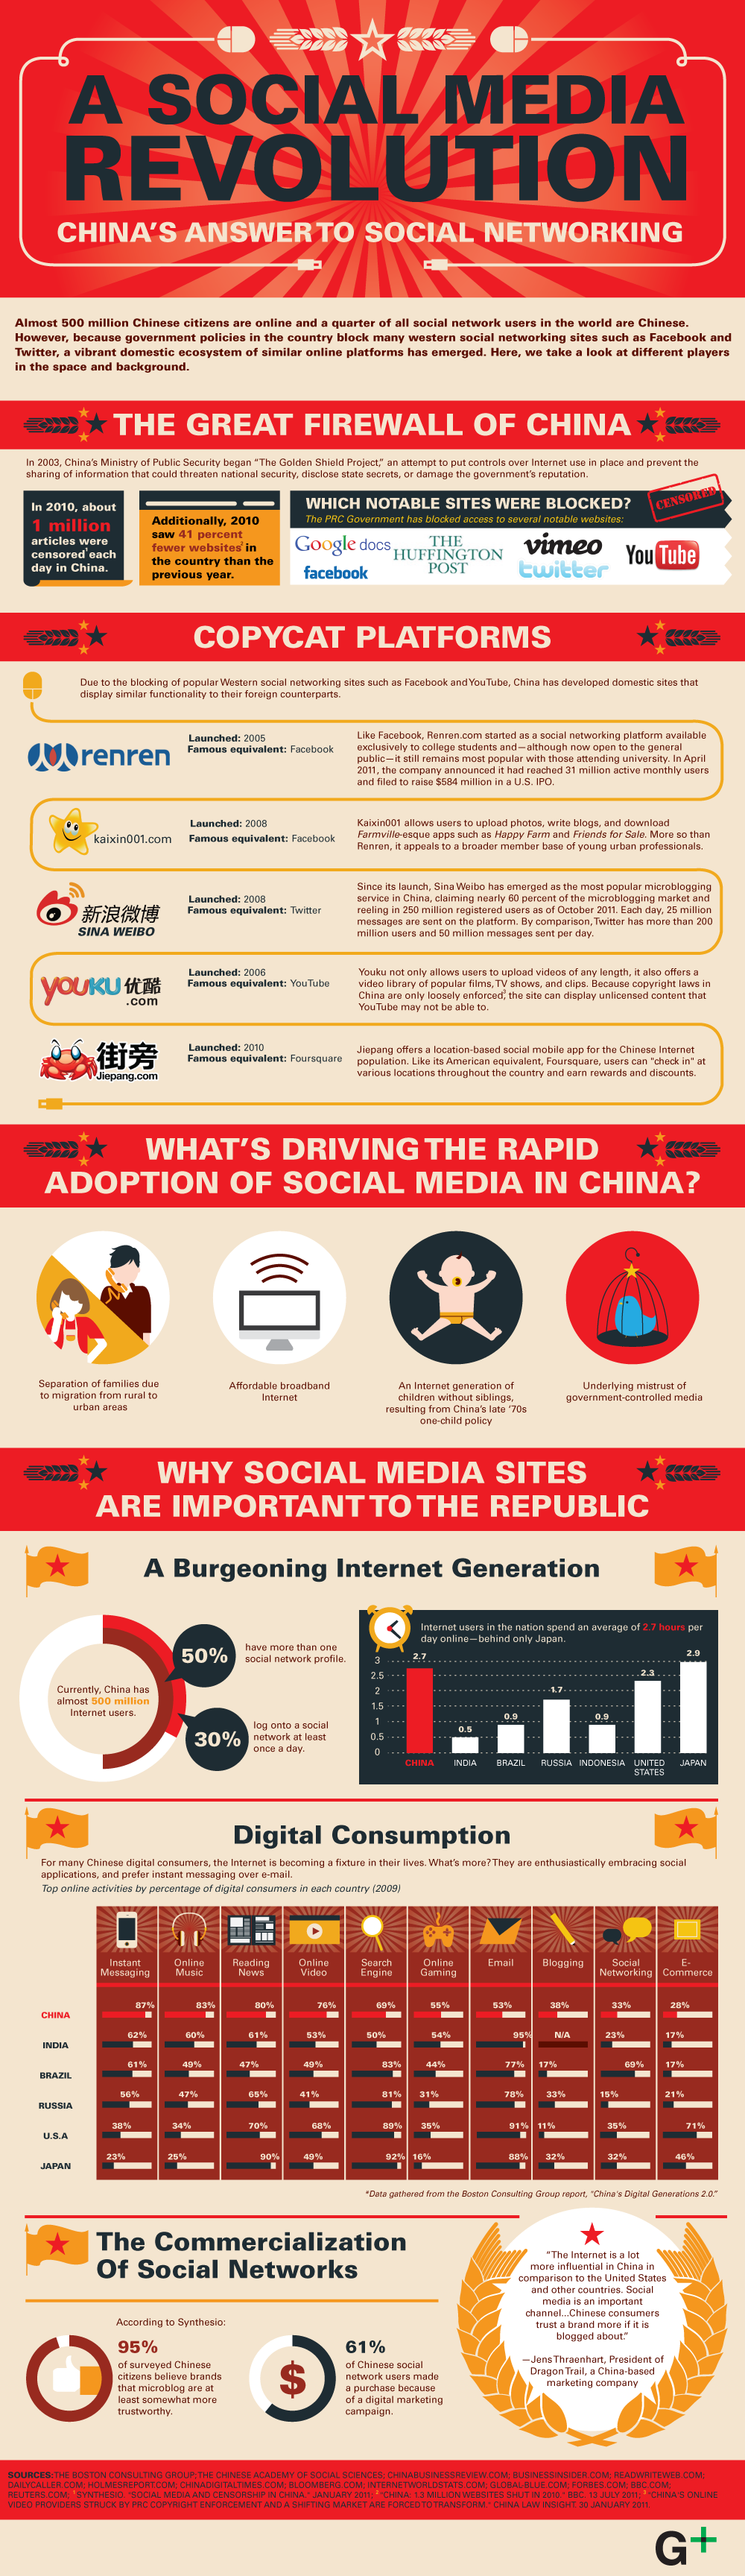 Role of Social Media and Networking in China - Copycats Social Media,Social Networking,copycat,platform,revenue,commercial,advertisement,infographic